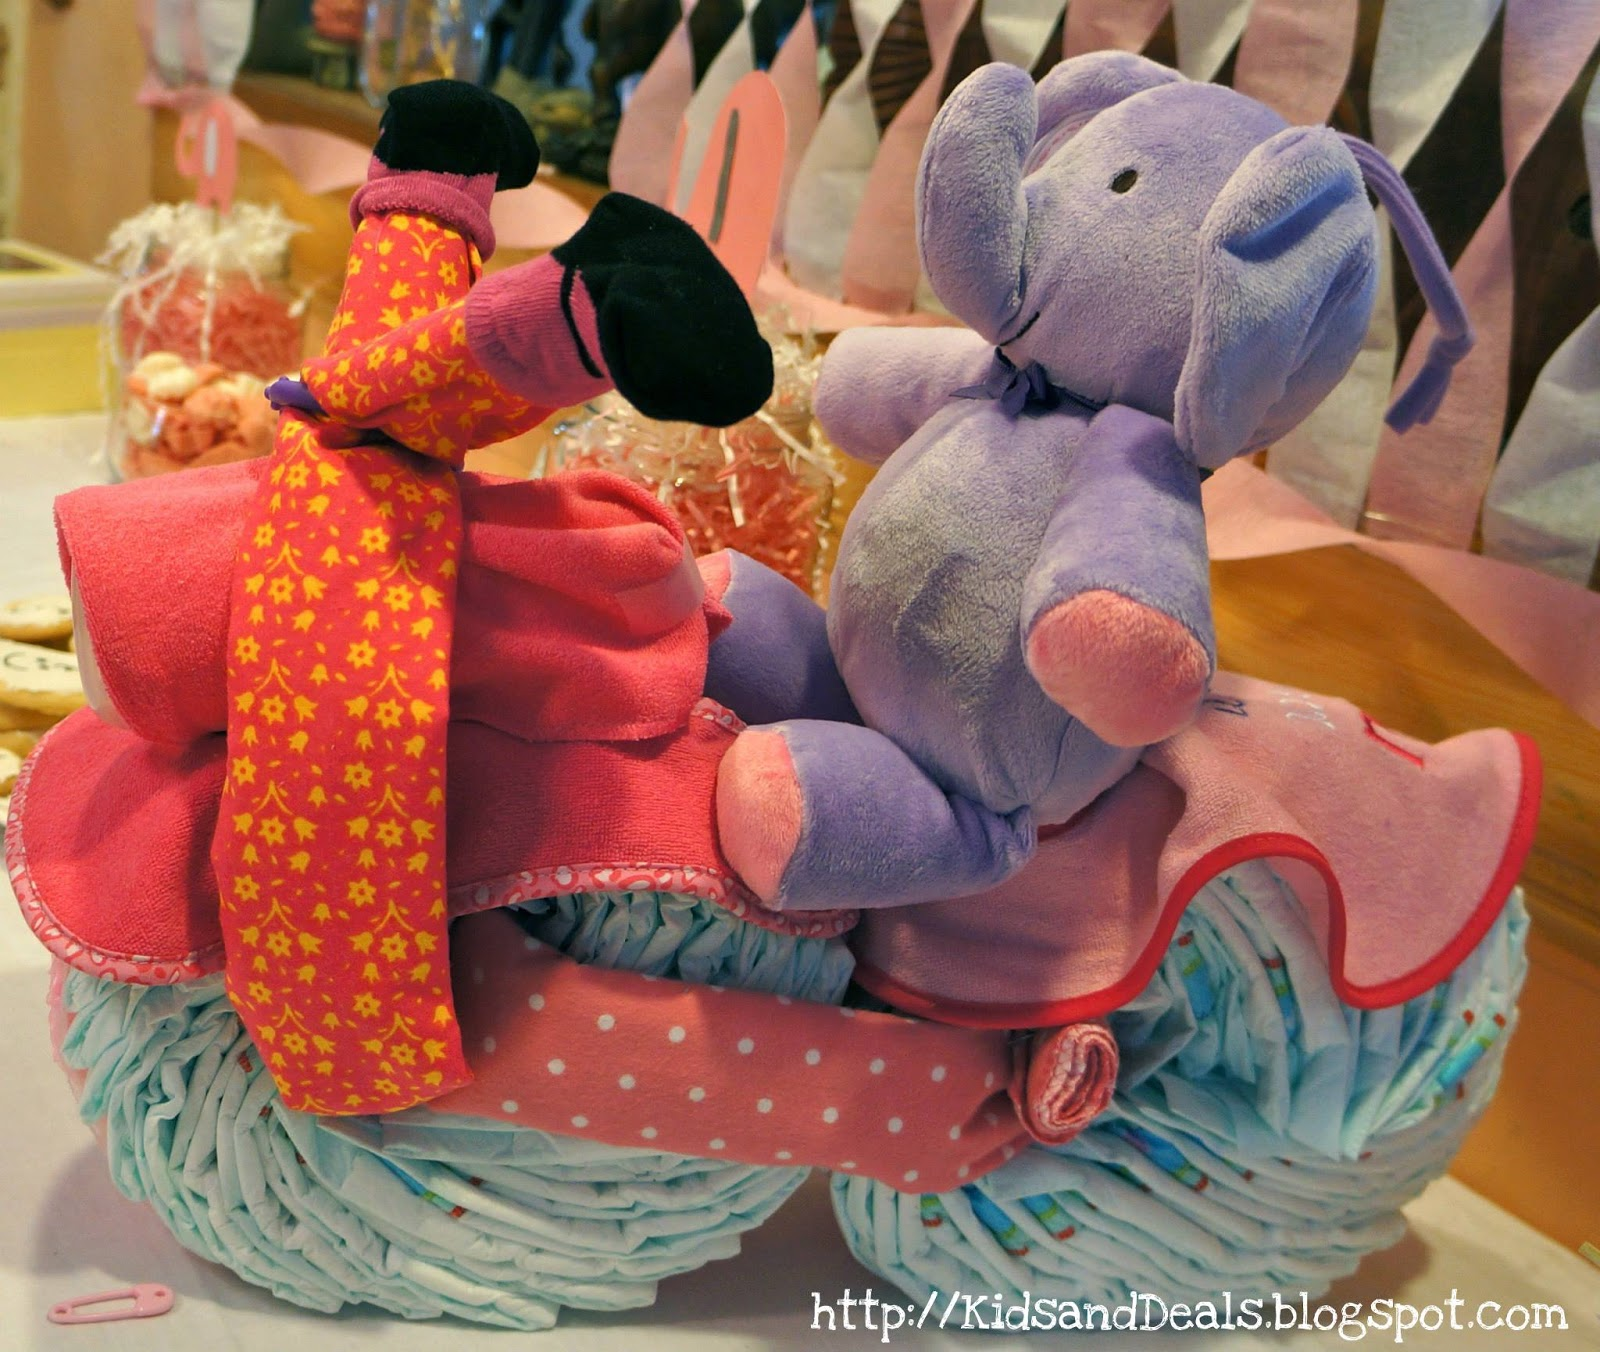 Elephant Themed Baby Shower: Kids And Deals: Elephant Themed Baby Shower